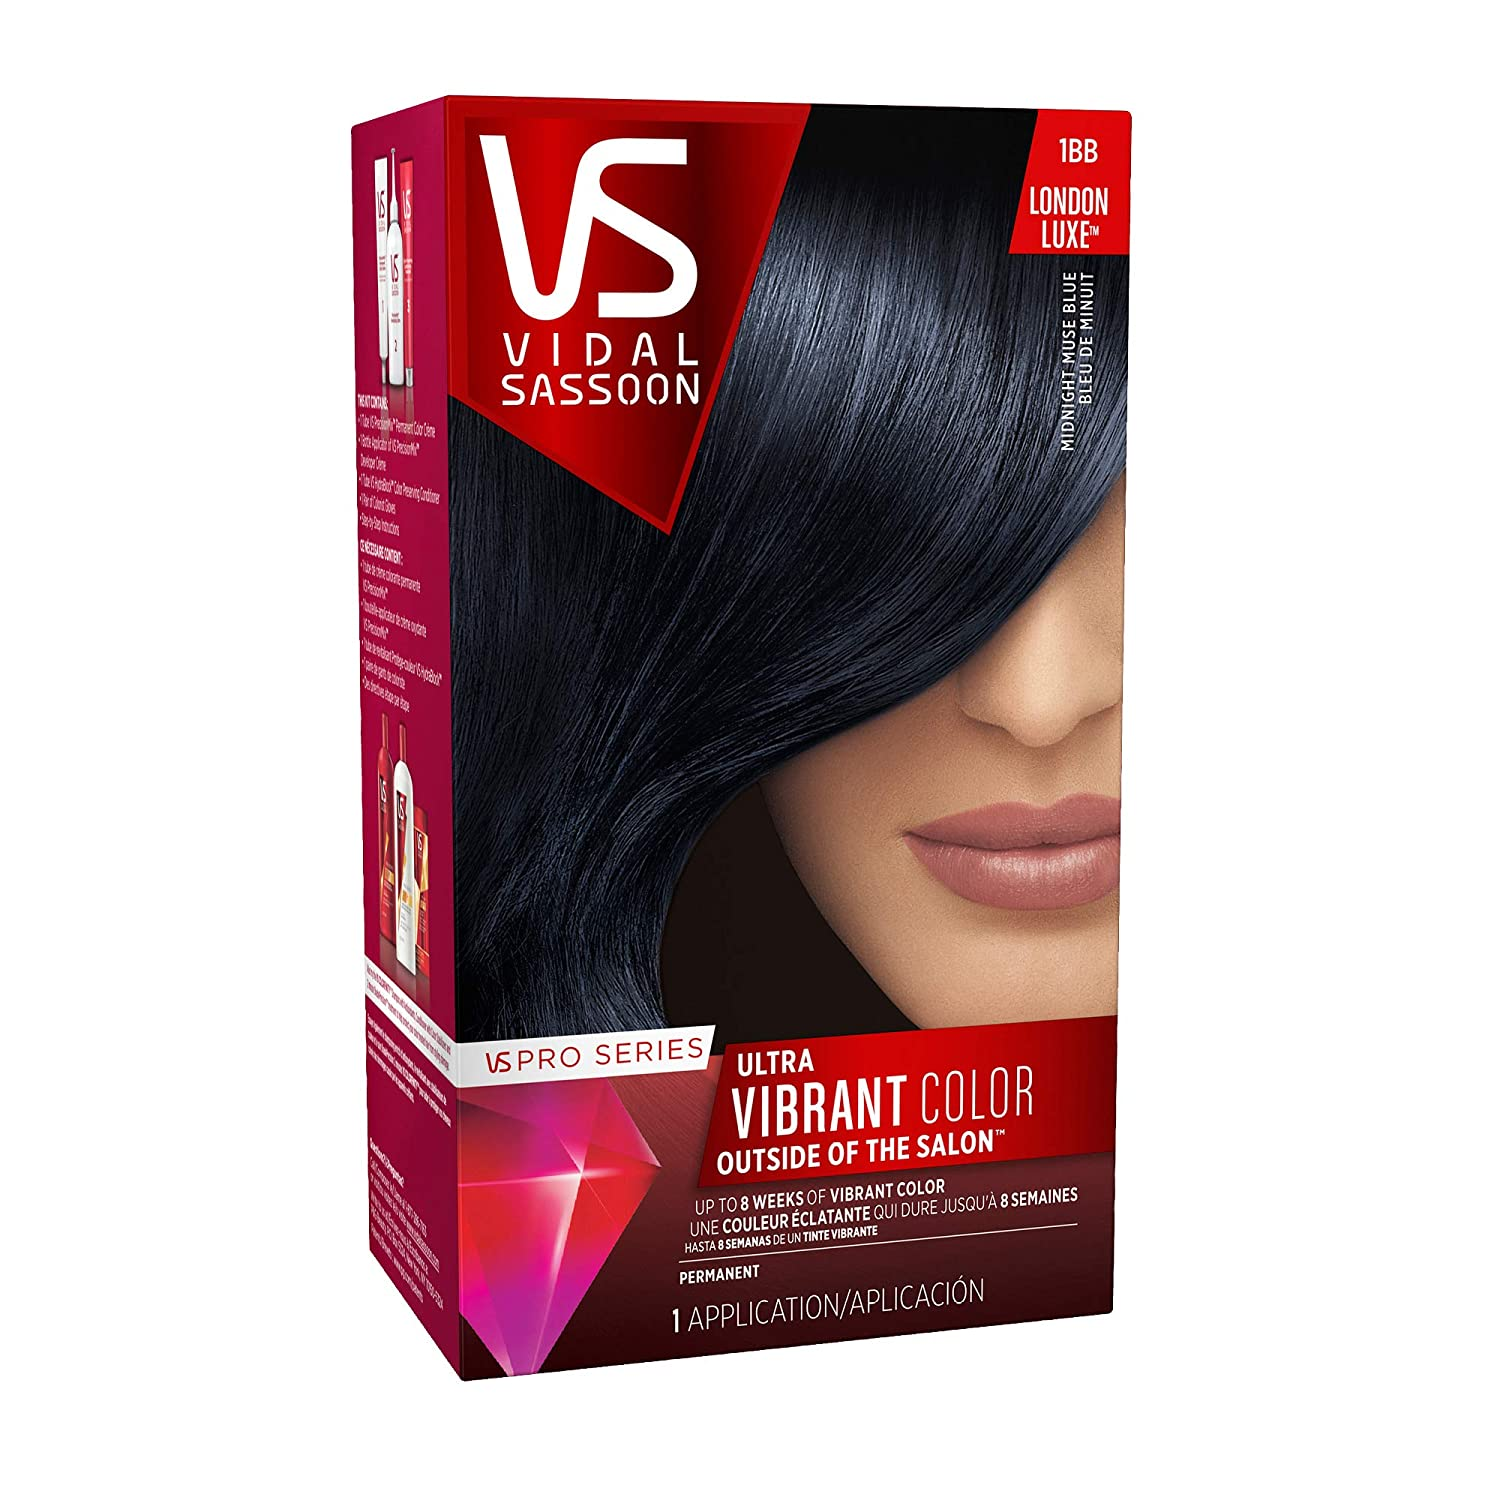 Clairol Vidal Sassoon Pro Series Hair Coloring Tools, 1bb Midnight Muse Blue